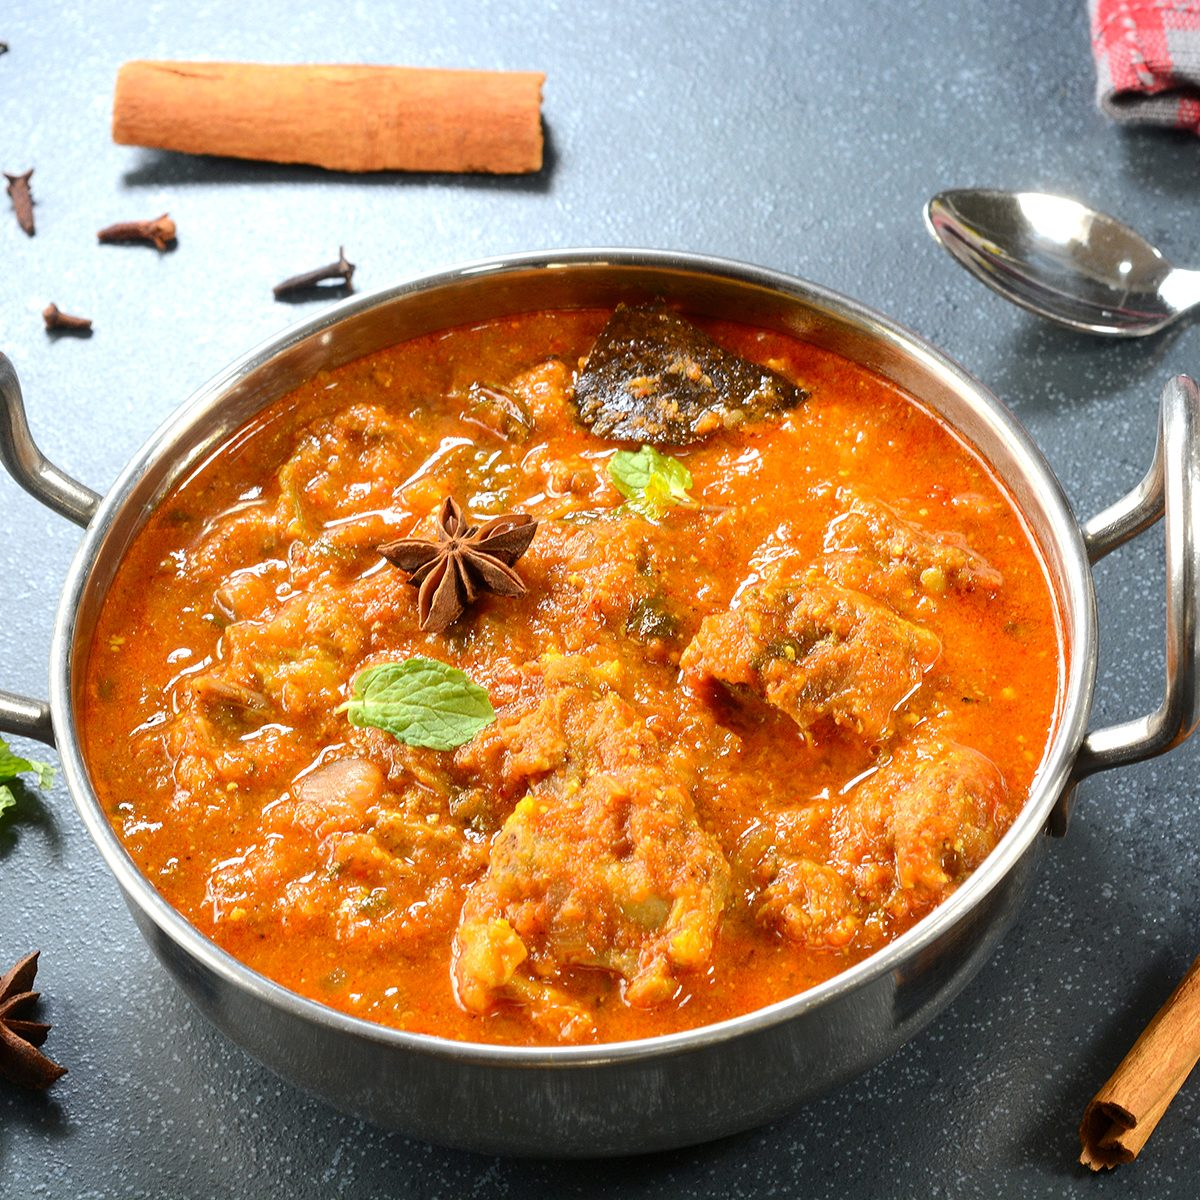 indian main dishes Rogan Josh in a bowl. It is a popular Indian goat mutton curry.